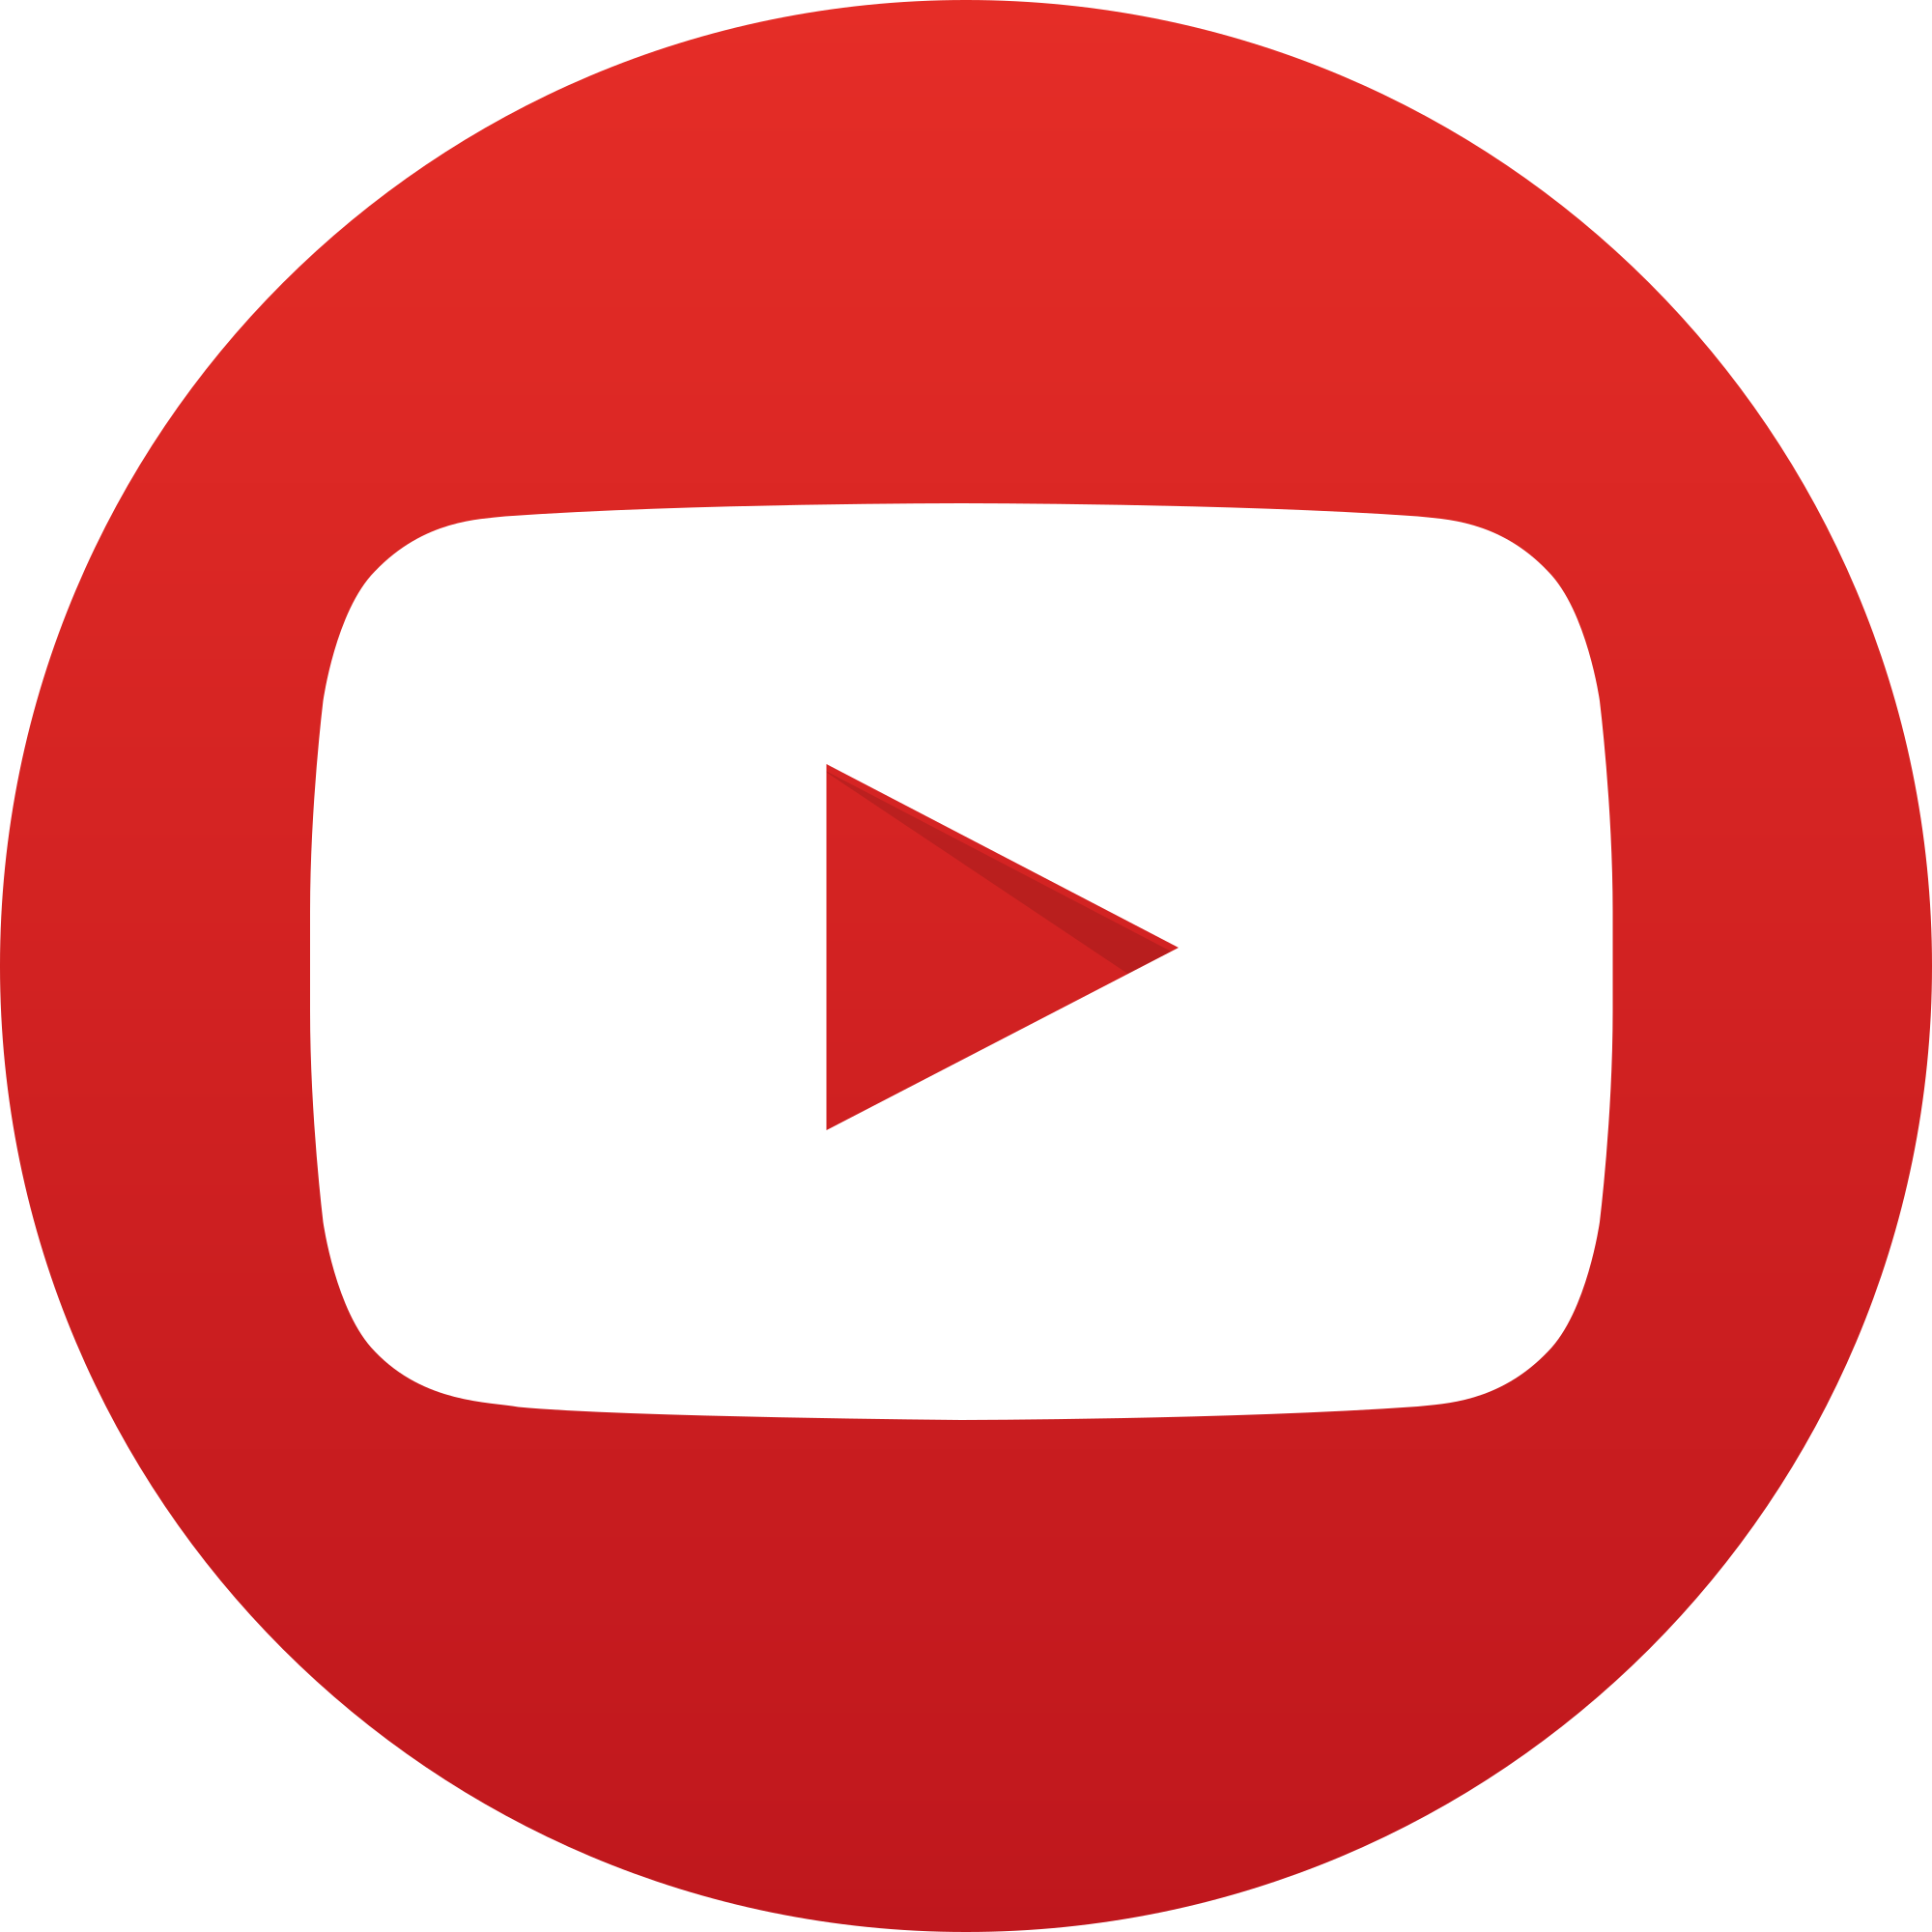 youtube-play-button-png-6